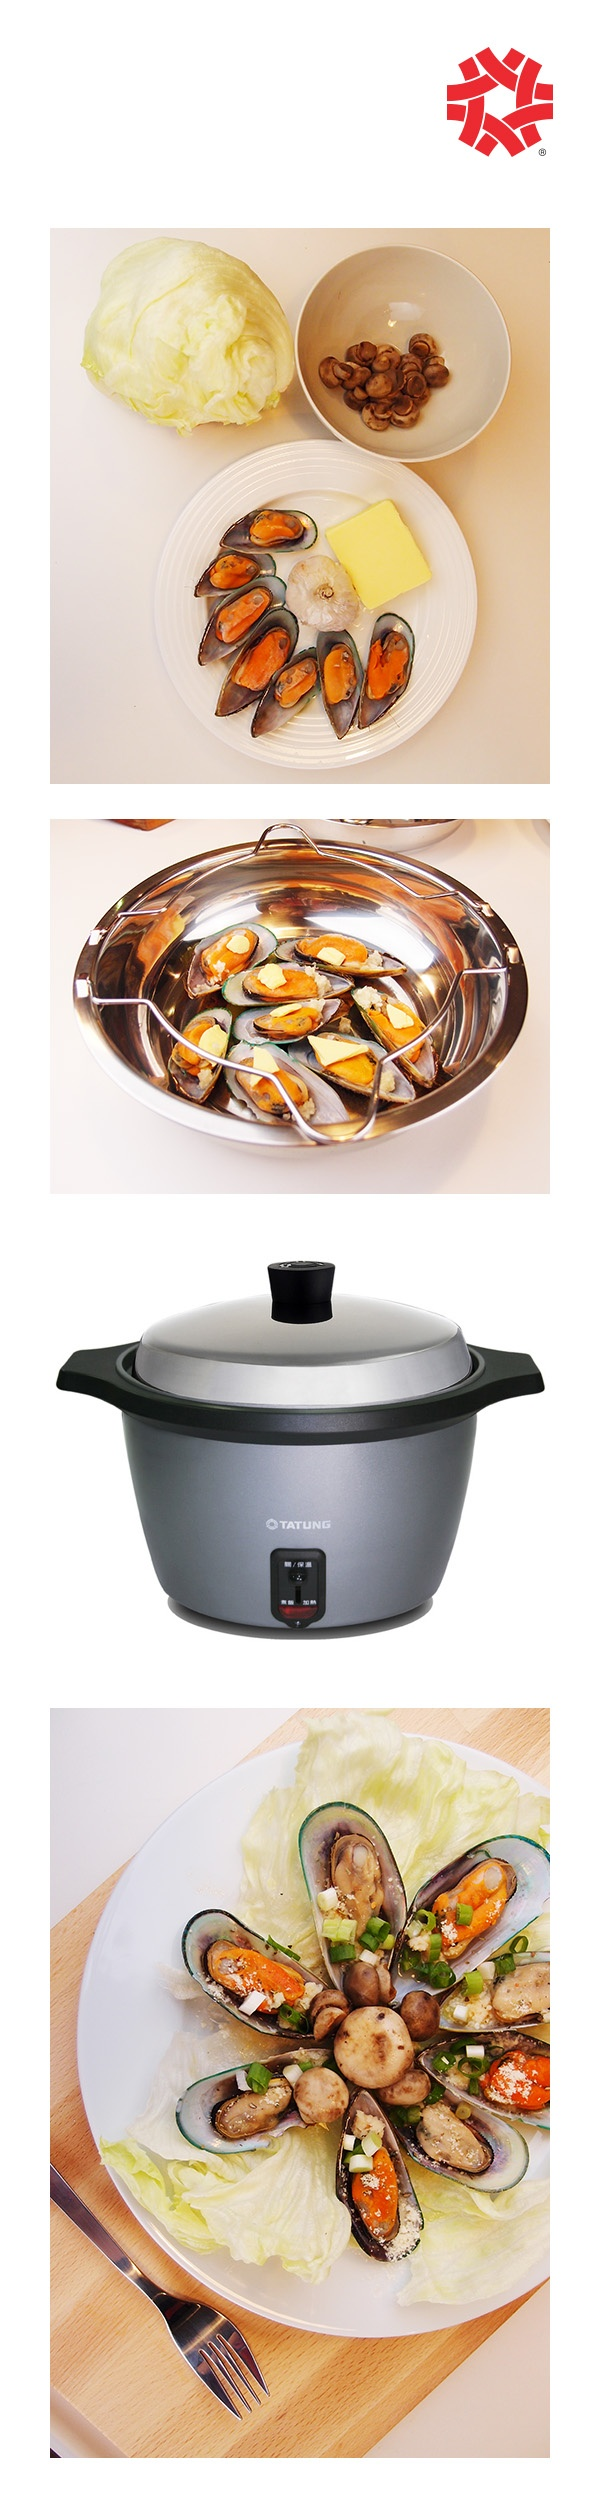 Second main course, mussels with butter and garlic the perfect combination in Tatung rice cookers.  It's easy to stay in to have a simple and delicious meal without eating out !    Let Tatung rice cookers' excellent performance to amaze your family and friends!  _Taiwan Excellence